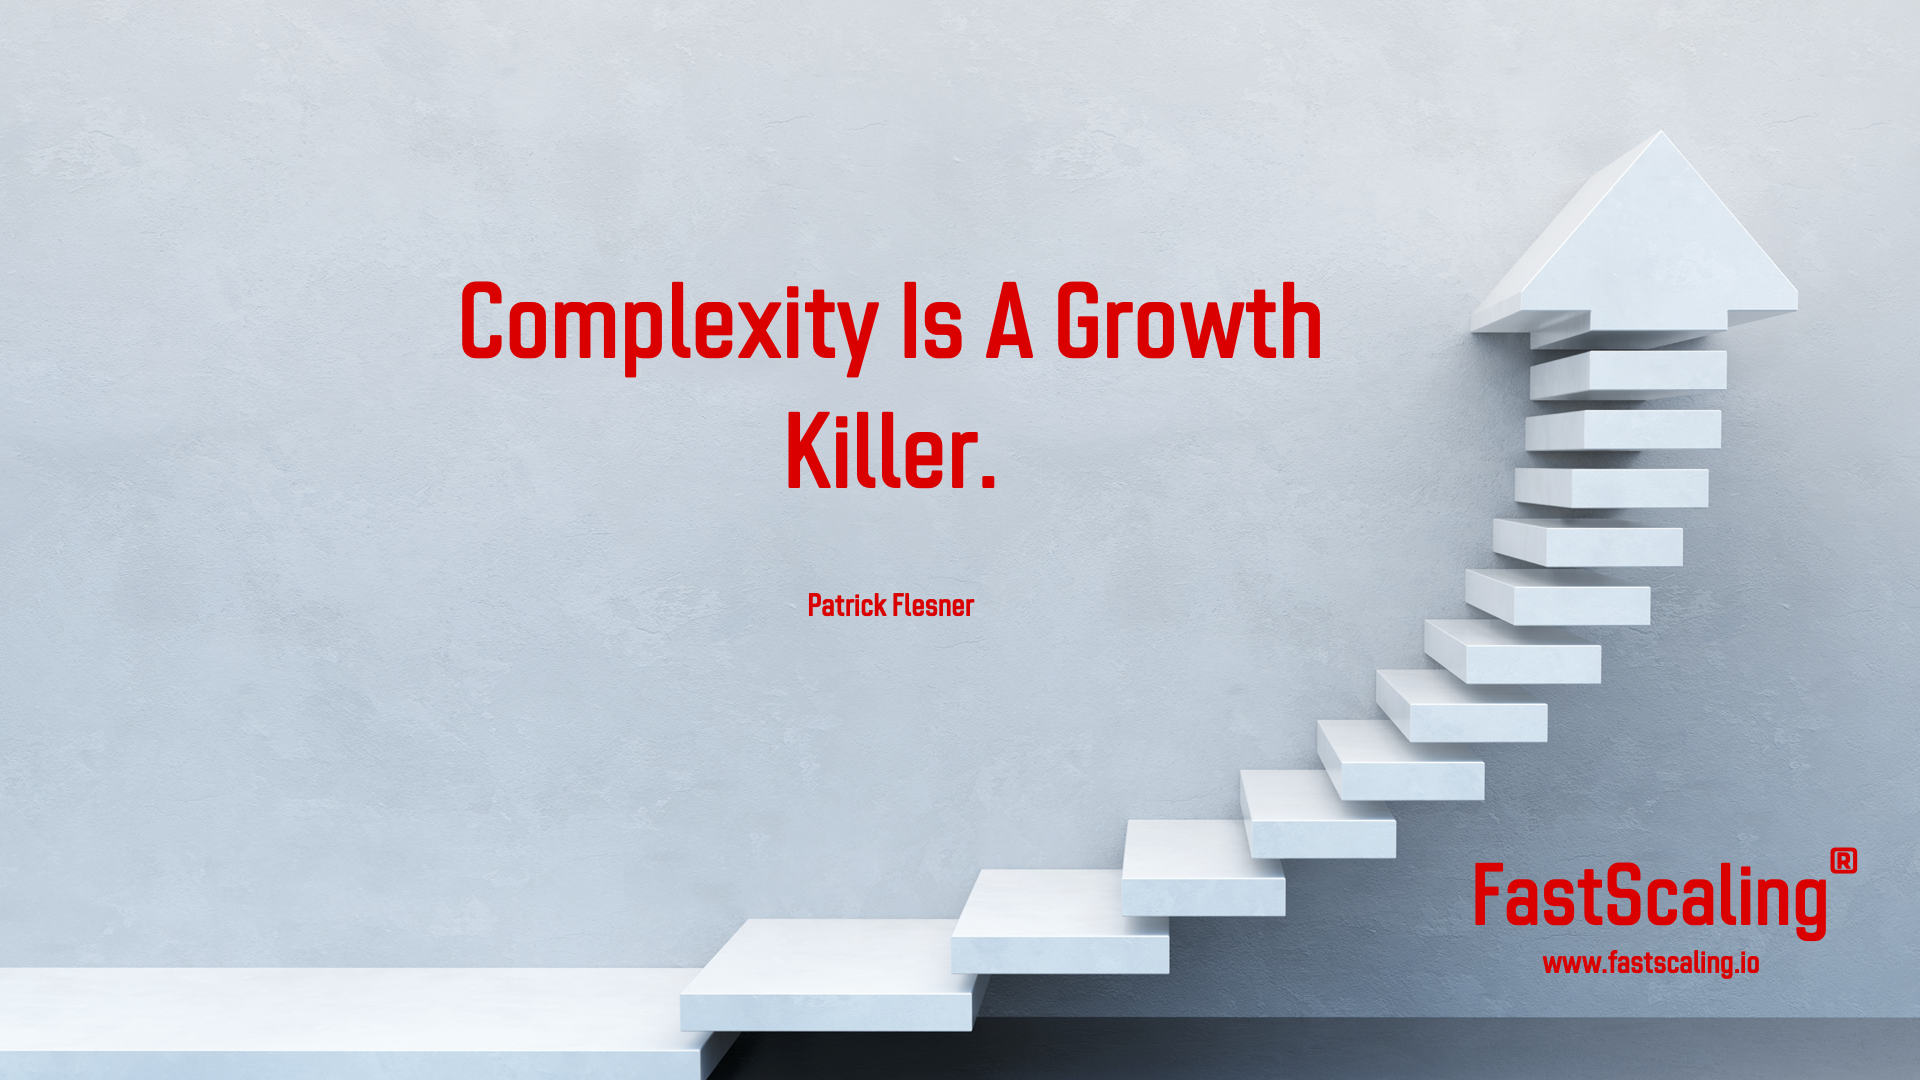 Complexity Is a Growth Killer